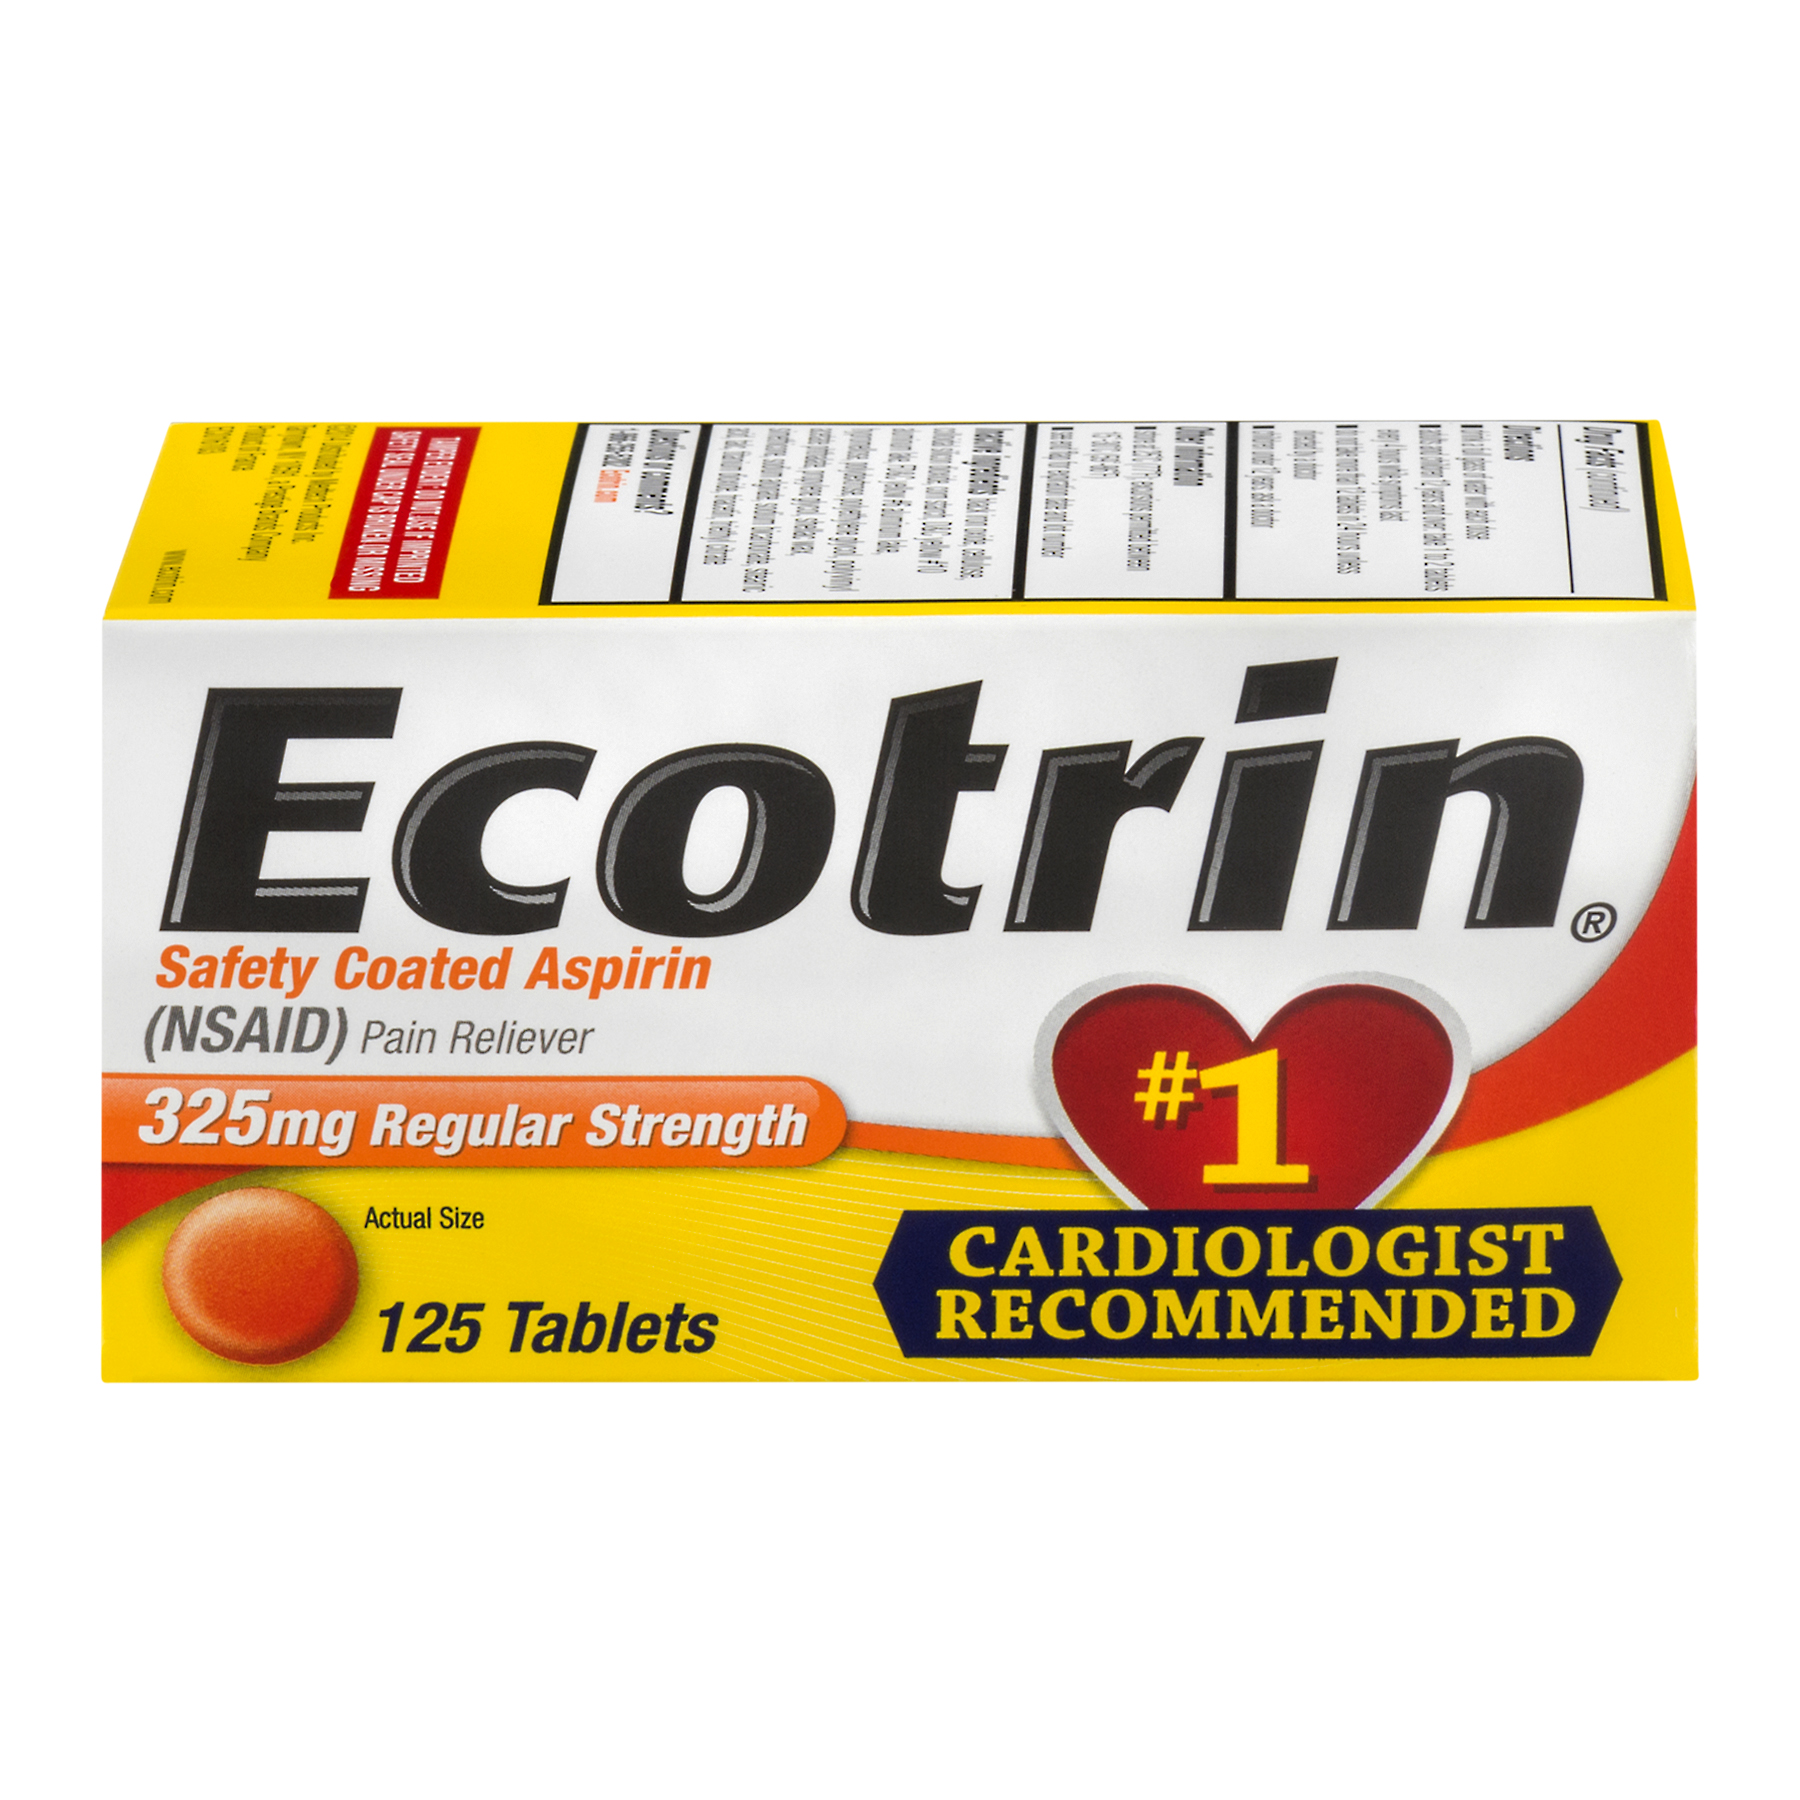 Ecotrin Safety Coated Aspirin Tablets Regular Strength - 125 CT